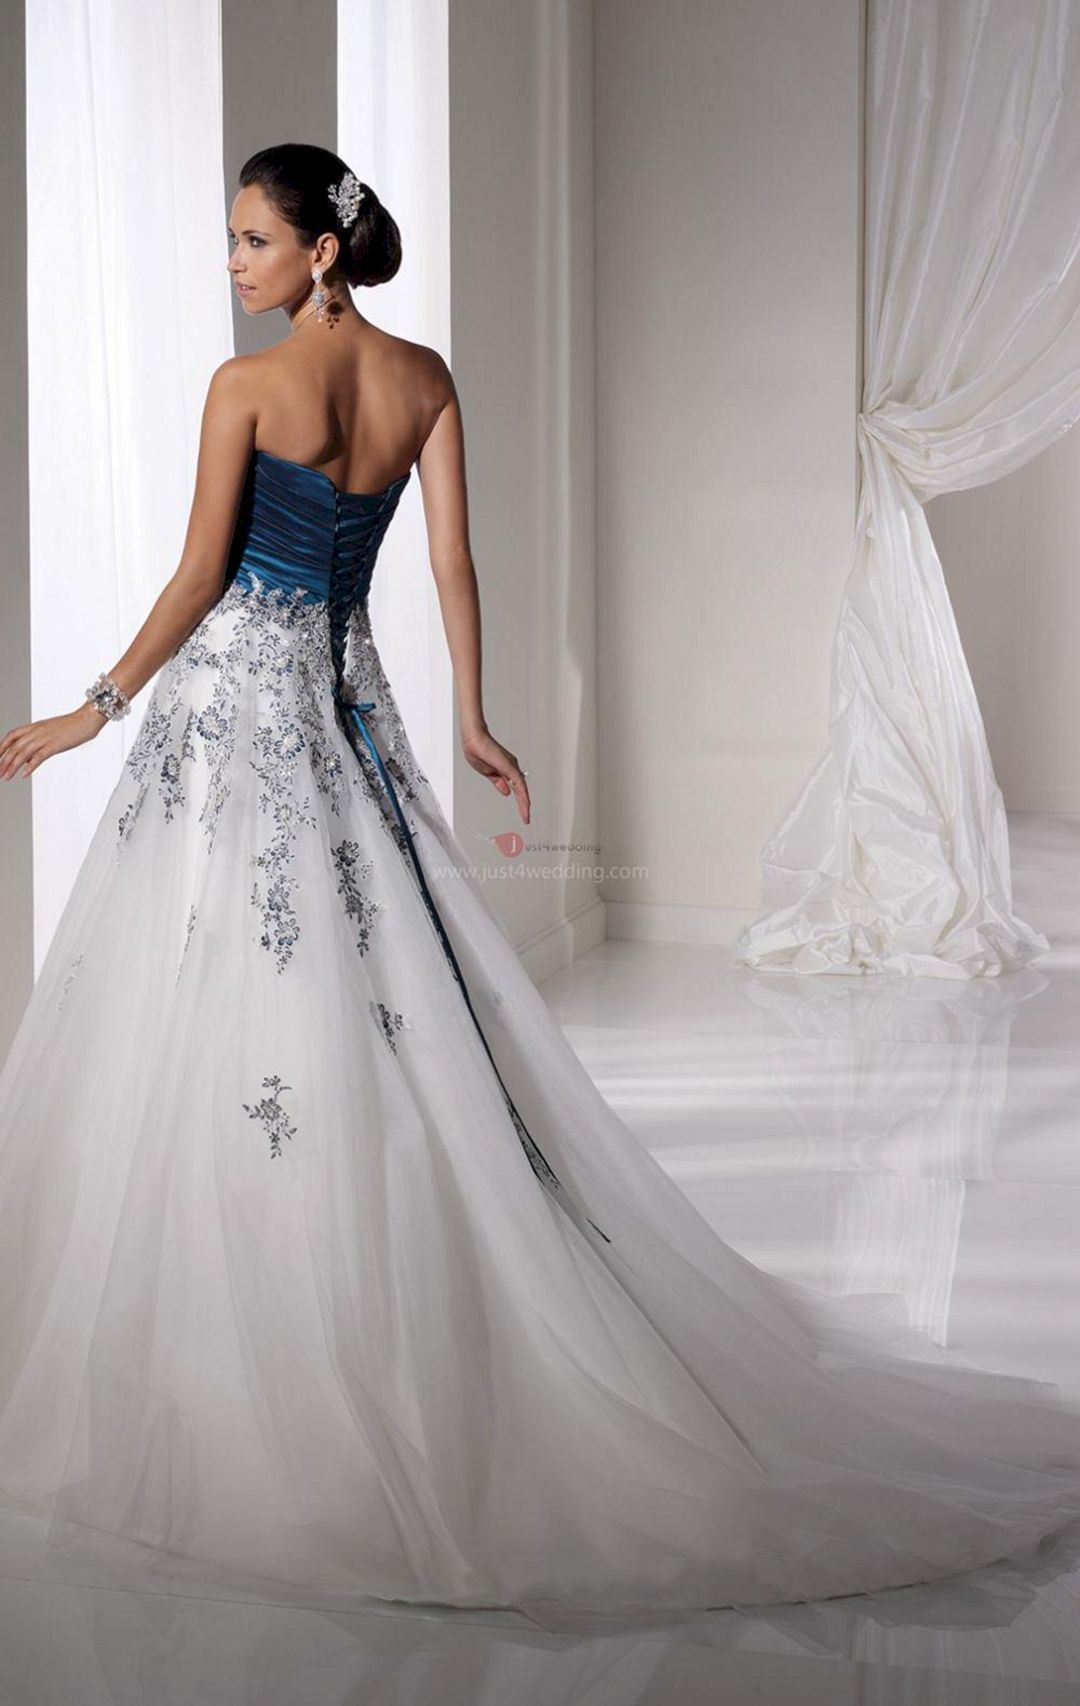 25 Extraordinary Blue Wedding Dress Ideas For Bride Steal The Look Blue Wedding Dresses Colored Wedding Dresses White Wedding Dresses [ 1706 x 1080 Pixel ]